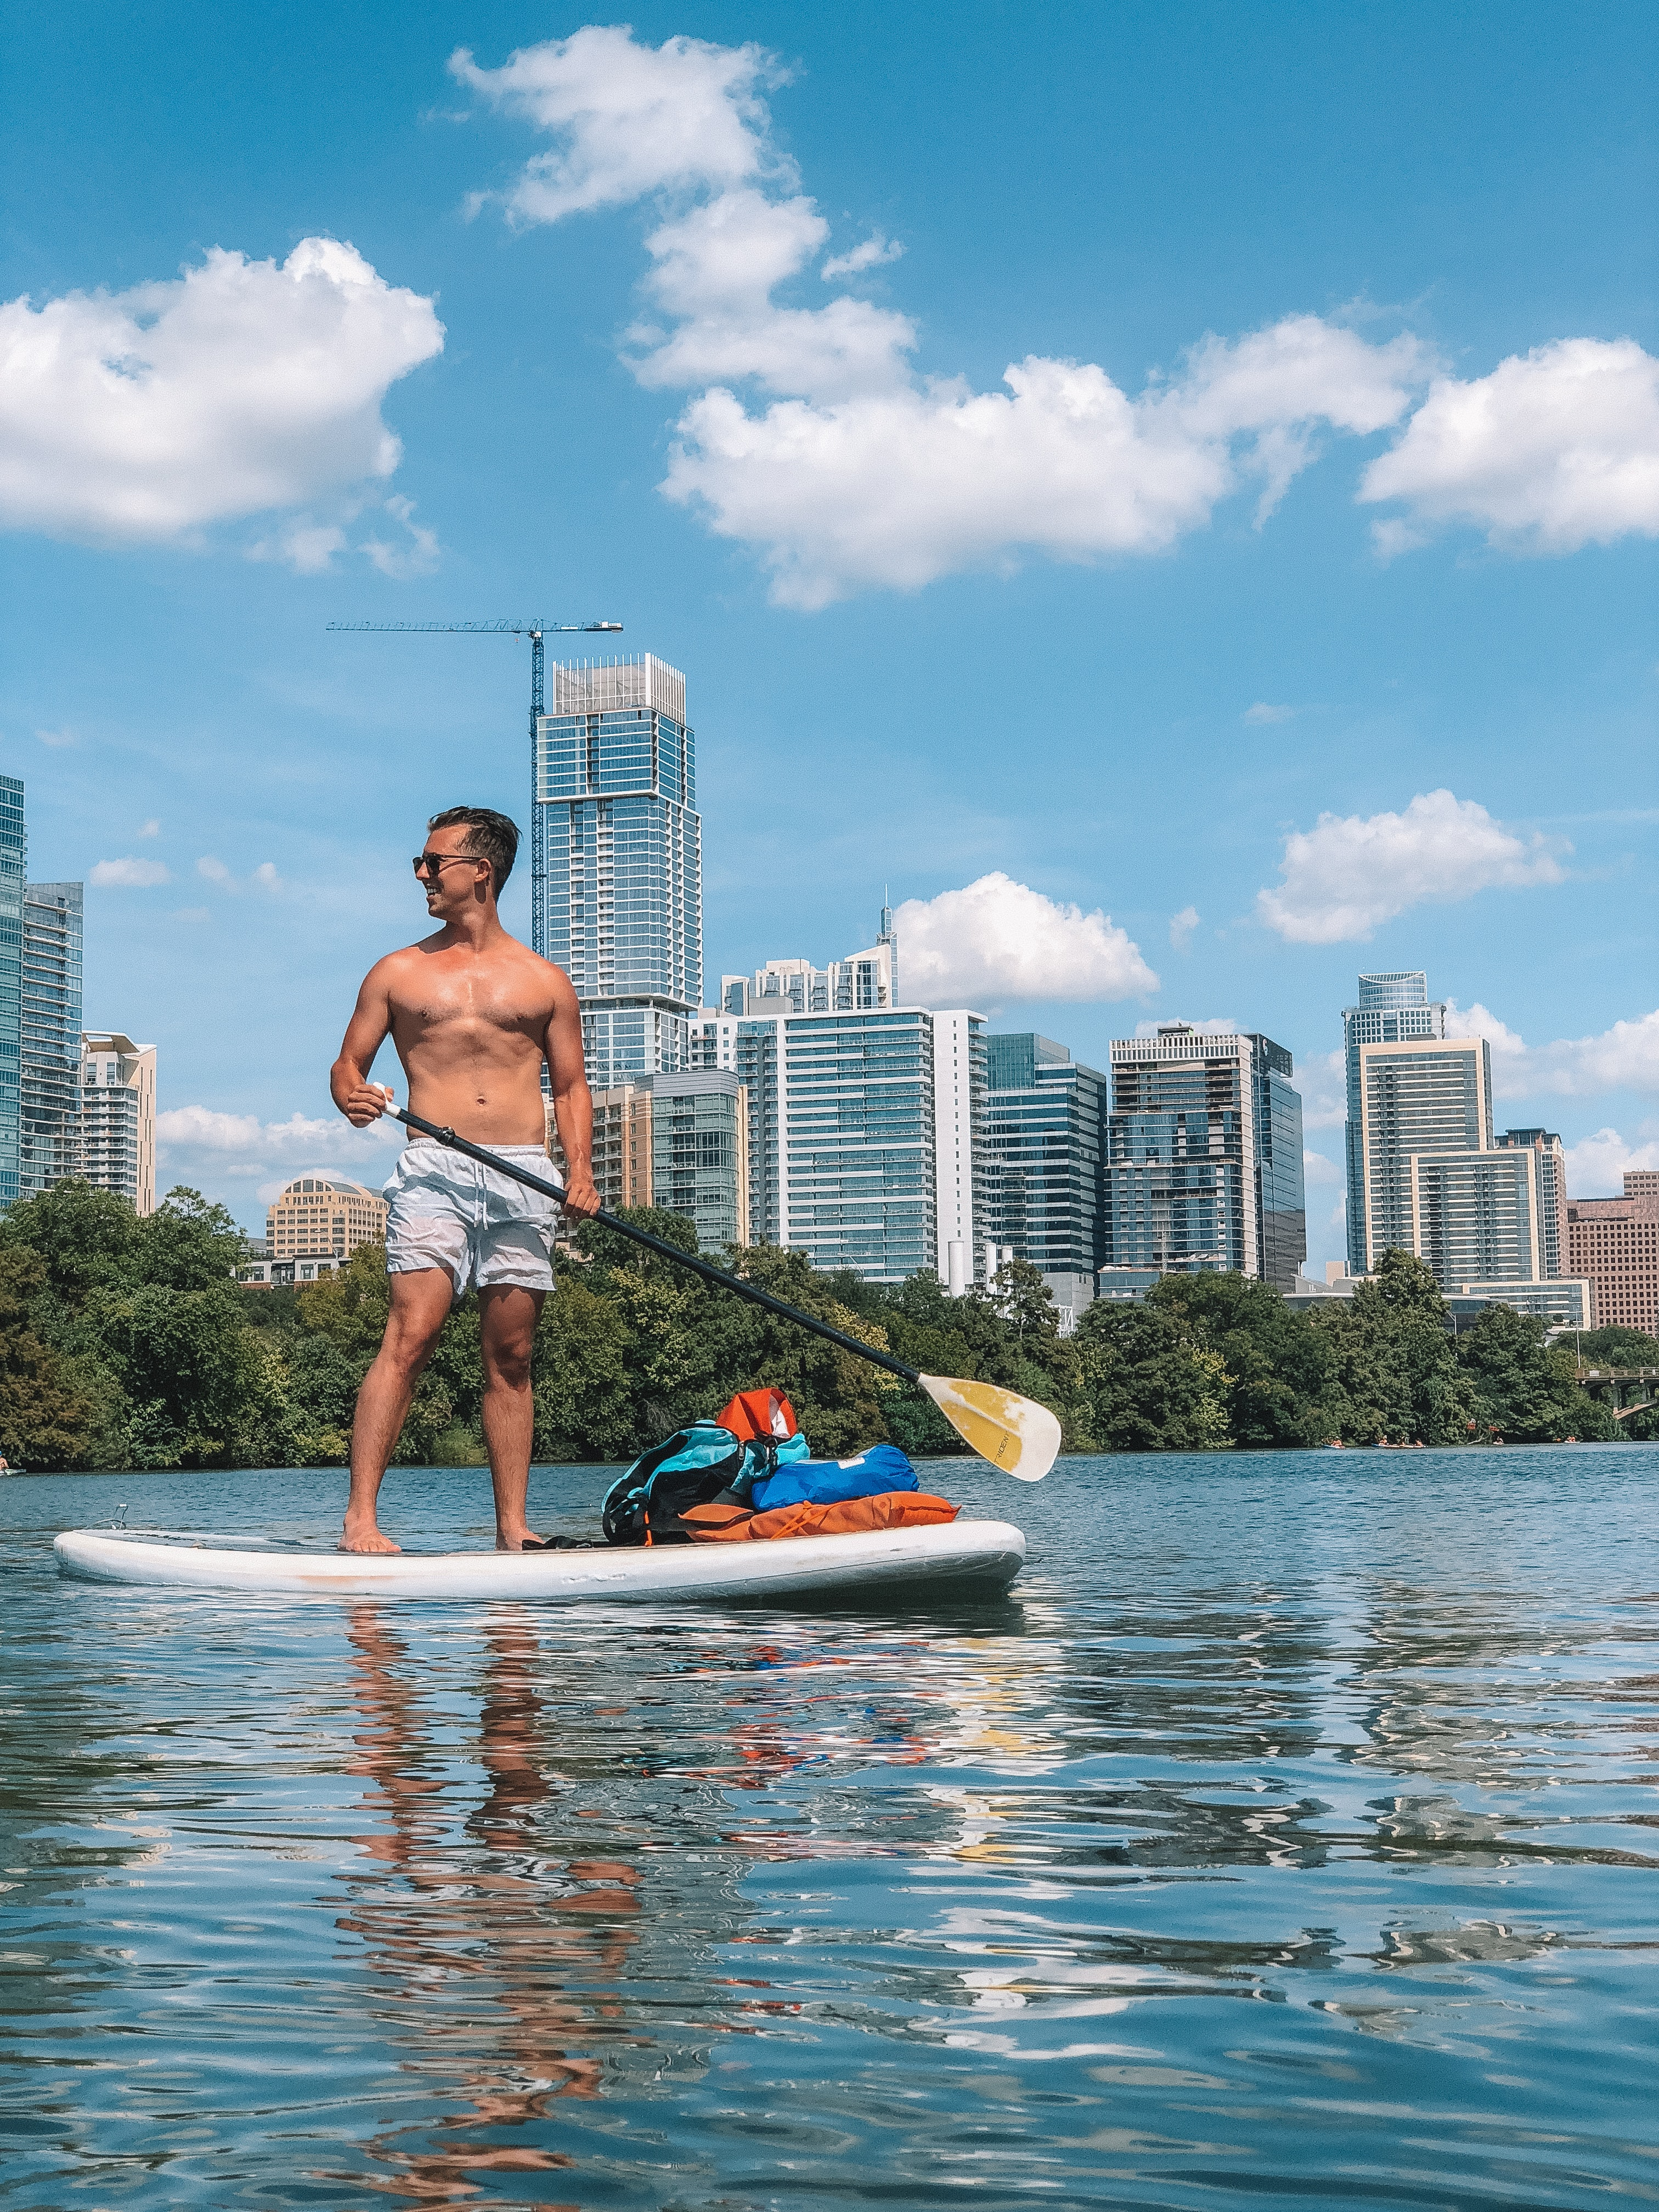 man in white shorts on paddle board